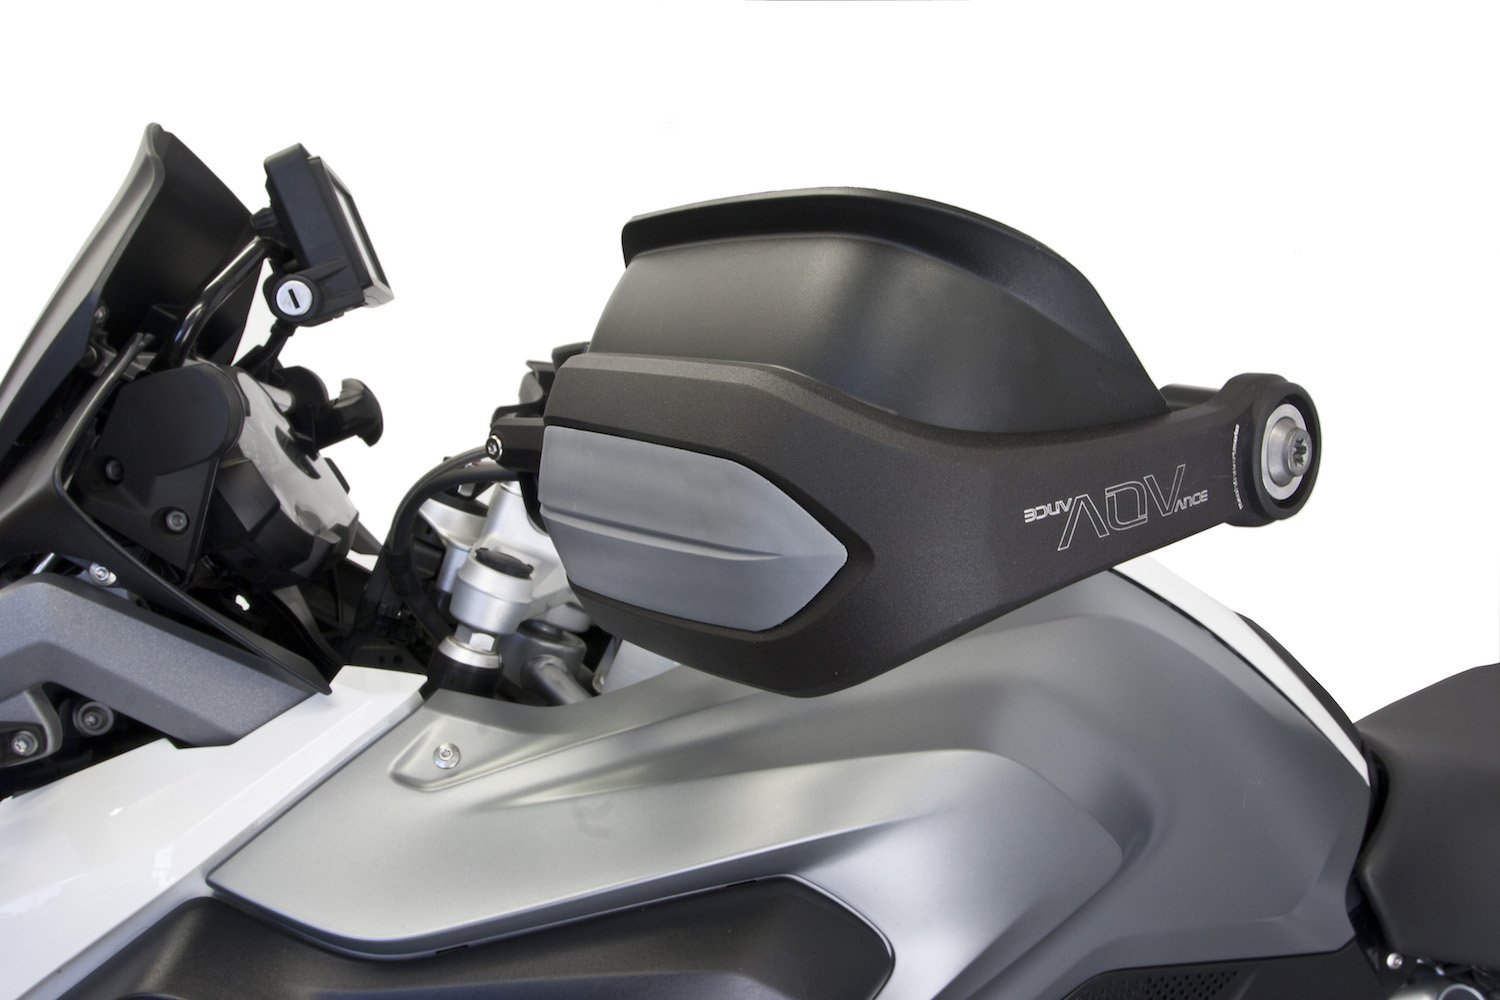 ADVance Guard Multi-Functional Hand Guards for AdventureTouring KIT 1a (BMW R1200GS水冷エンジンモデル F800/700GS他) B078H4DF4P